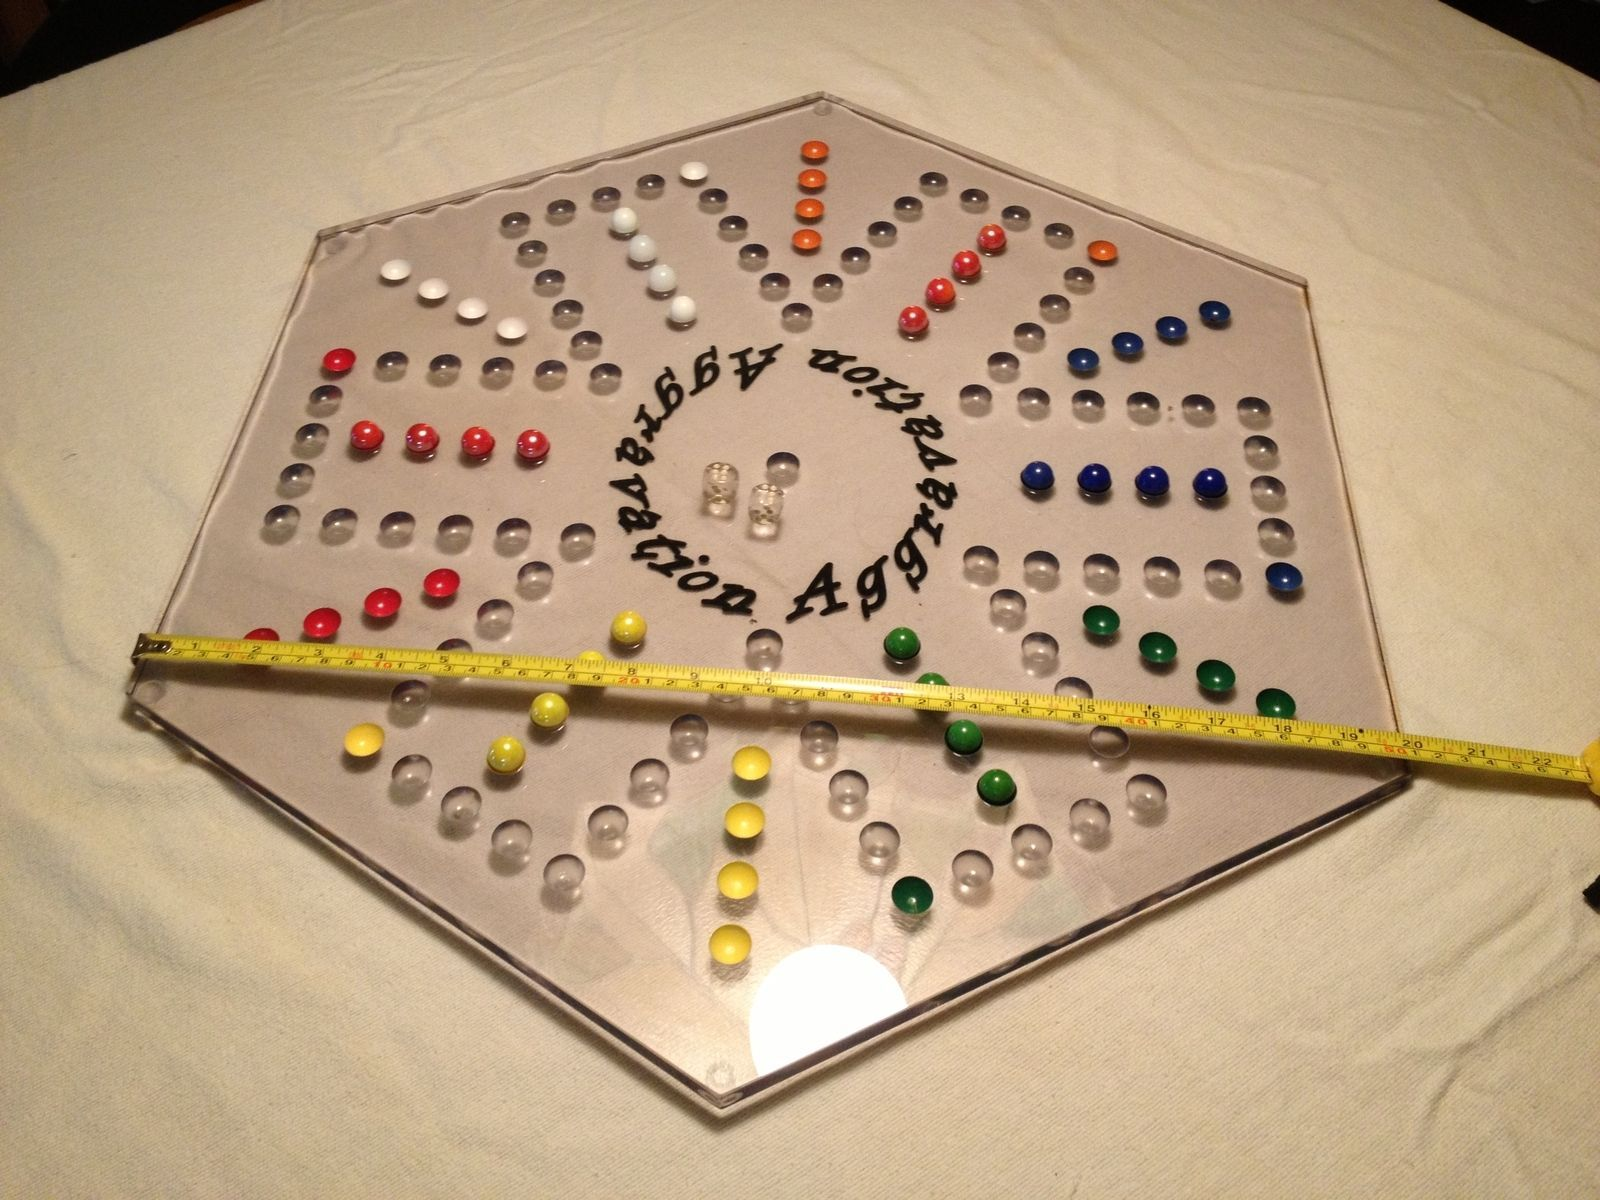 It's just an image of Gorgeous Printable Template for Aggravation Game